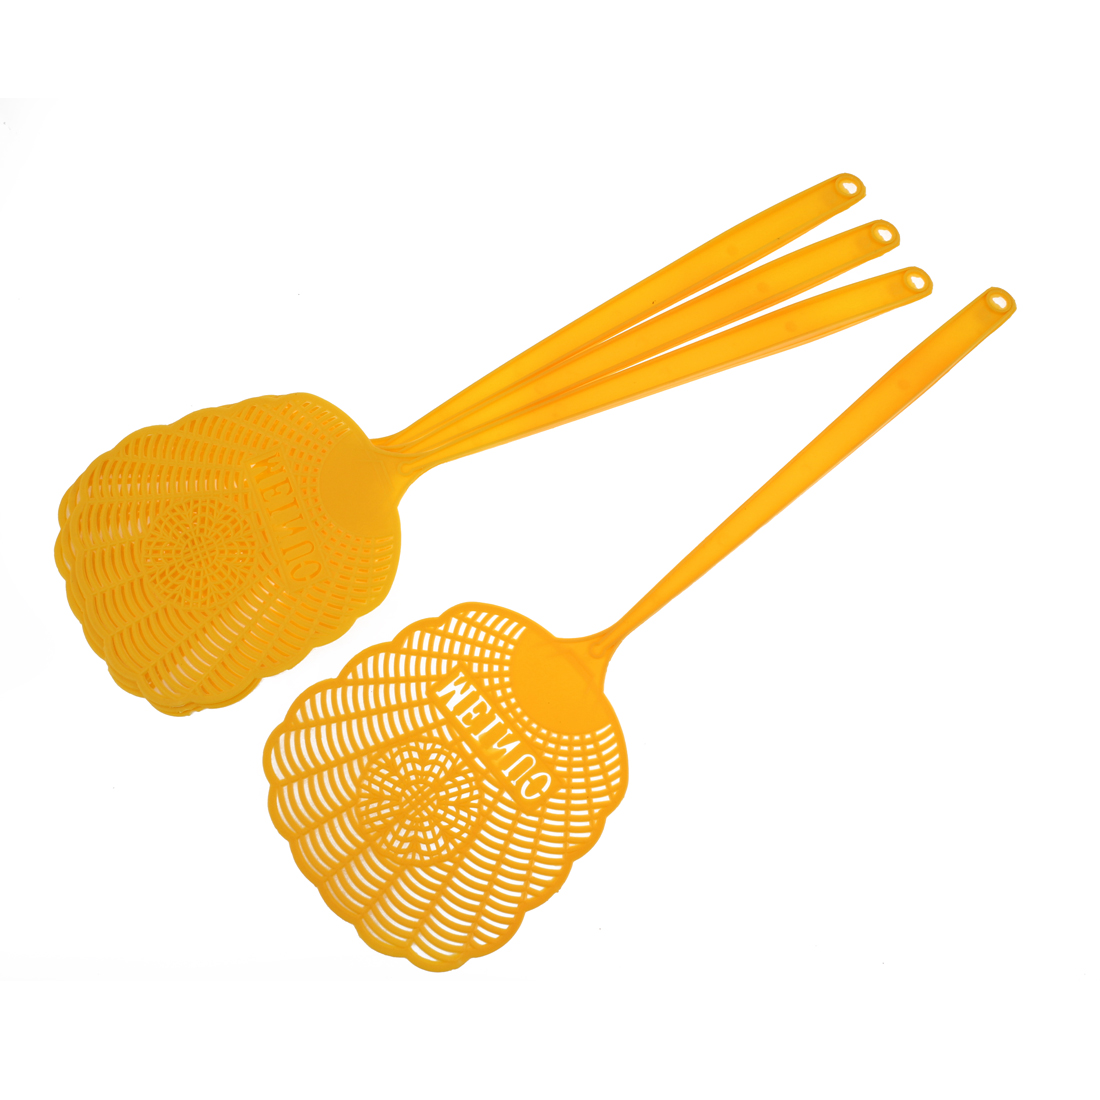 4Pcs Household Plastic Mosquito Cockroach Insects Fly Swatter 47cm Orange